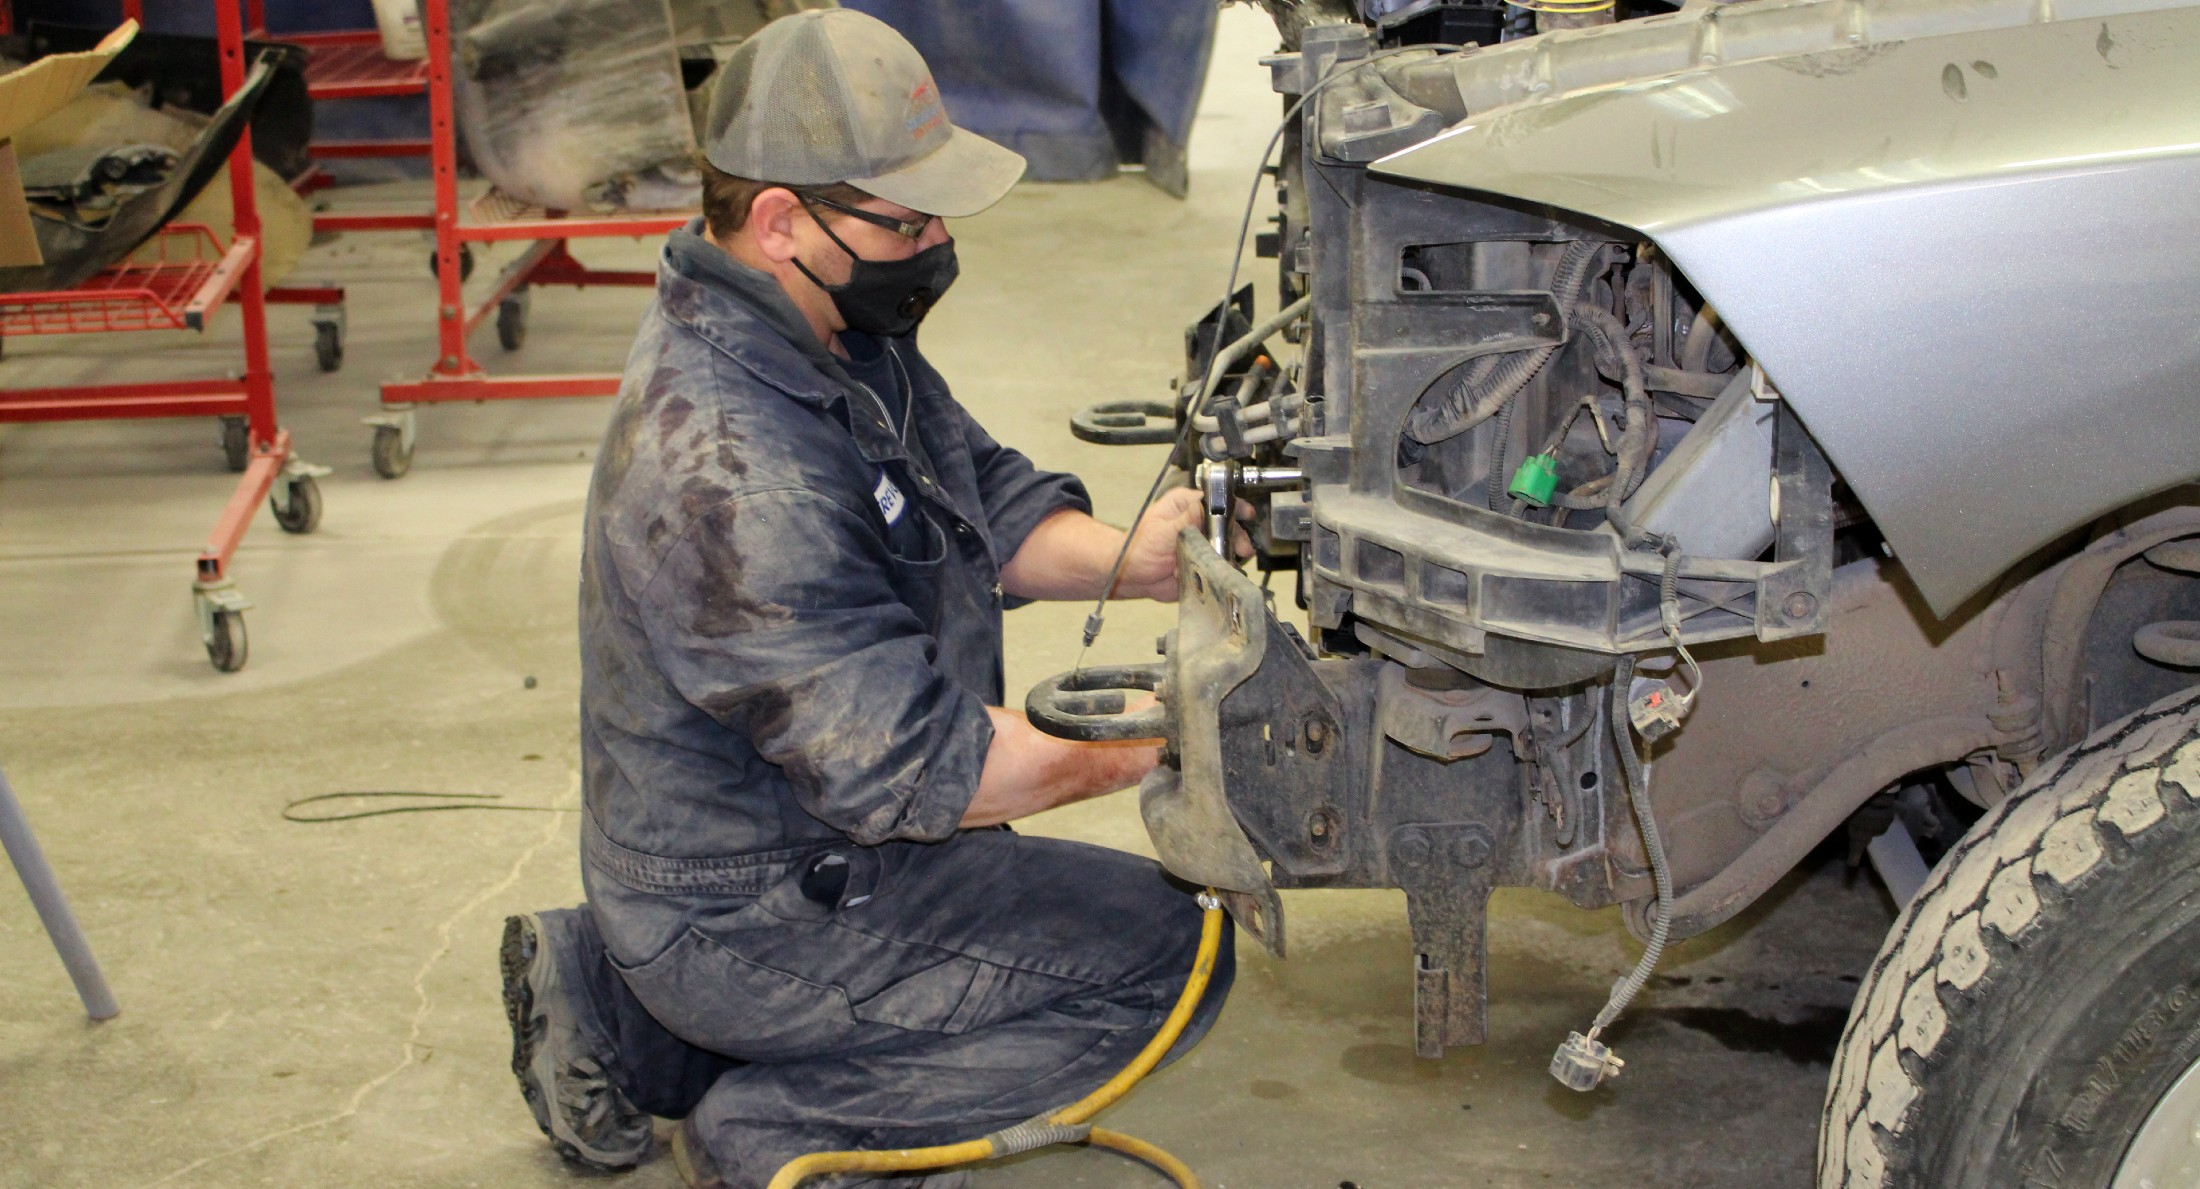 A bergens expert employee works on a vehicle in the autobody shop in regina